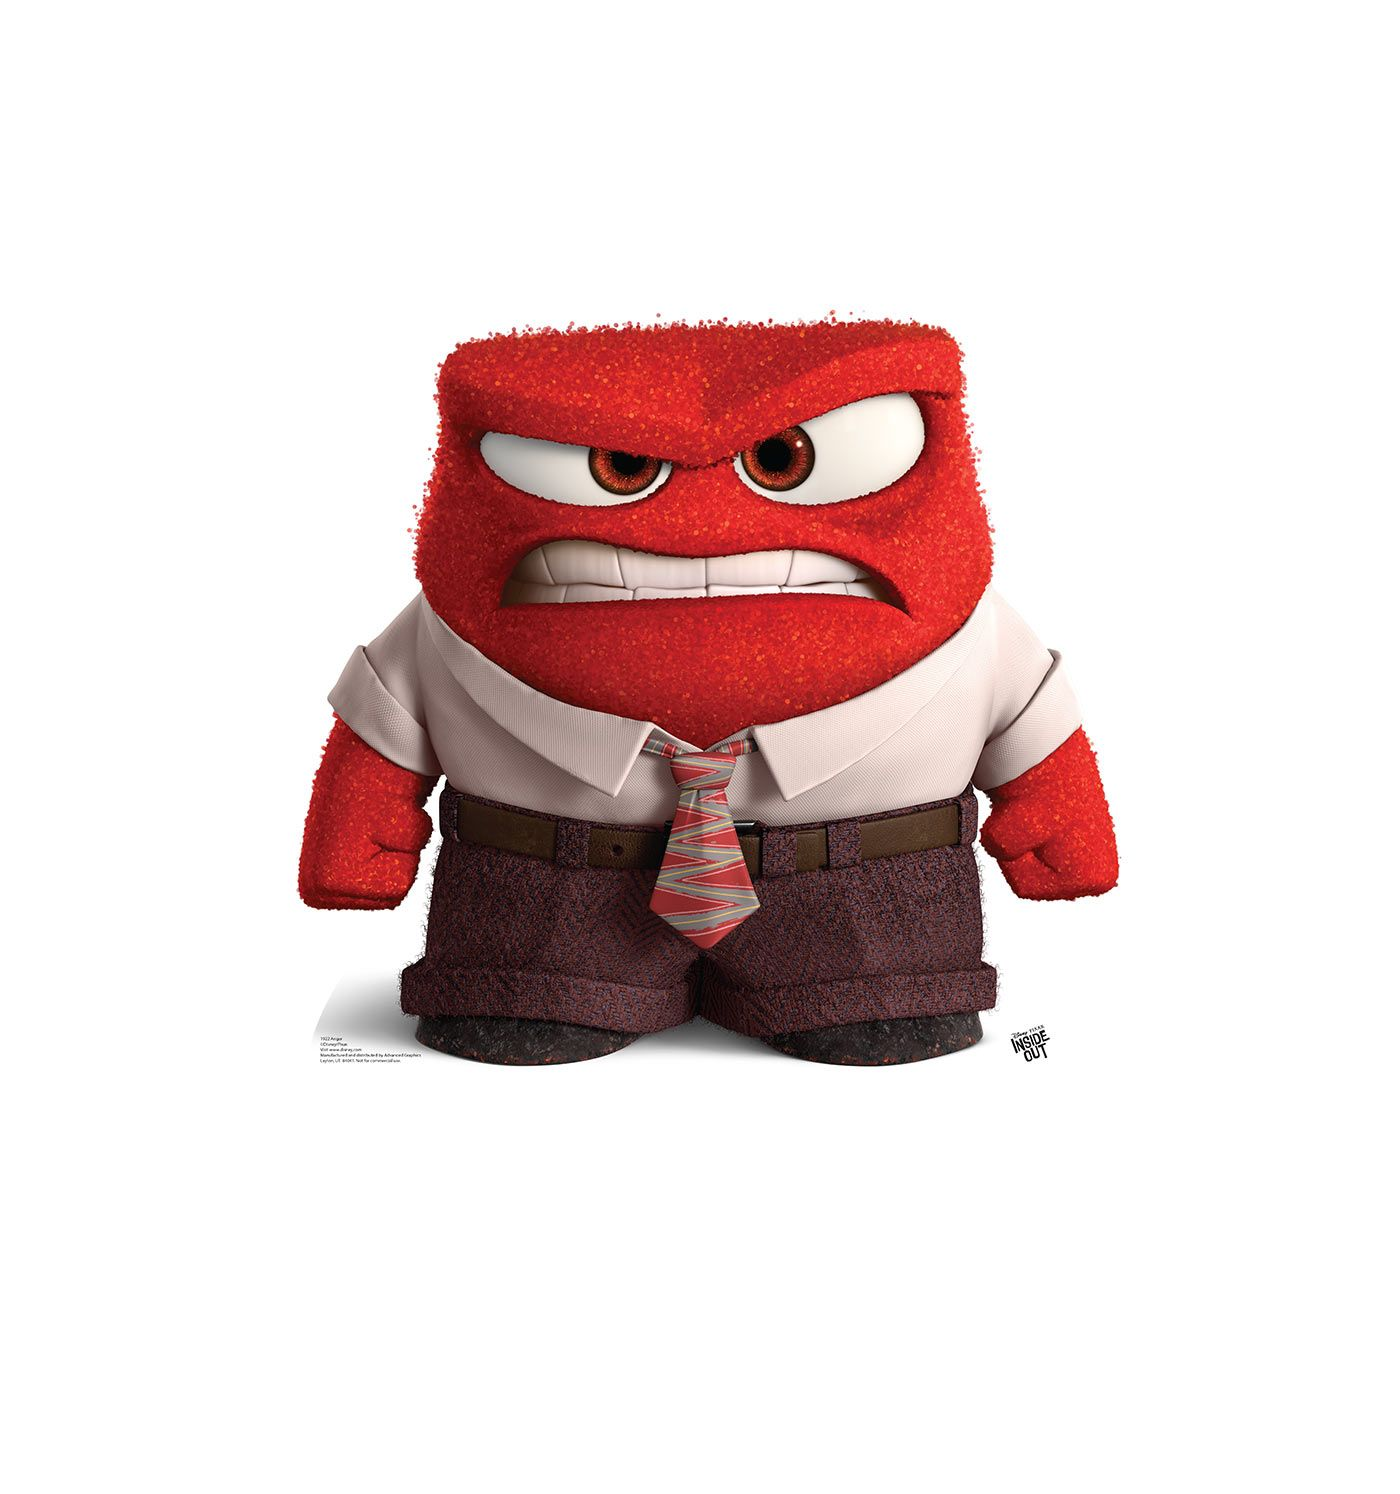 Anger clipart inside out. Cardboard cutout of from